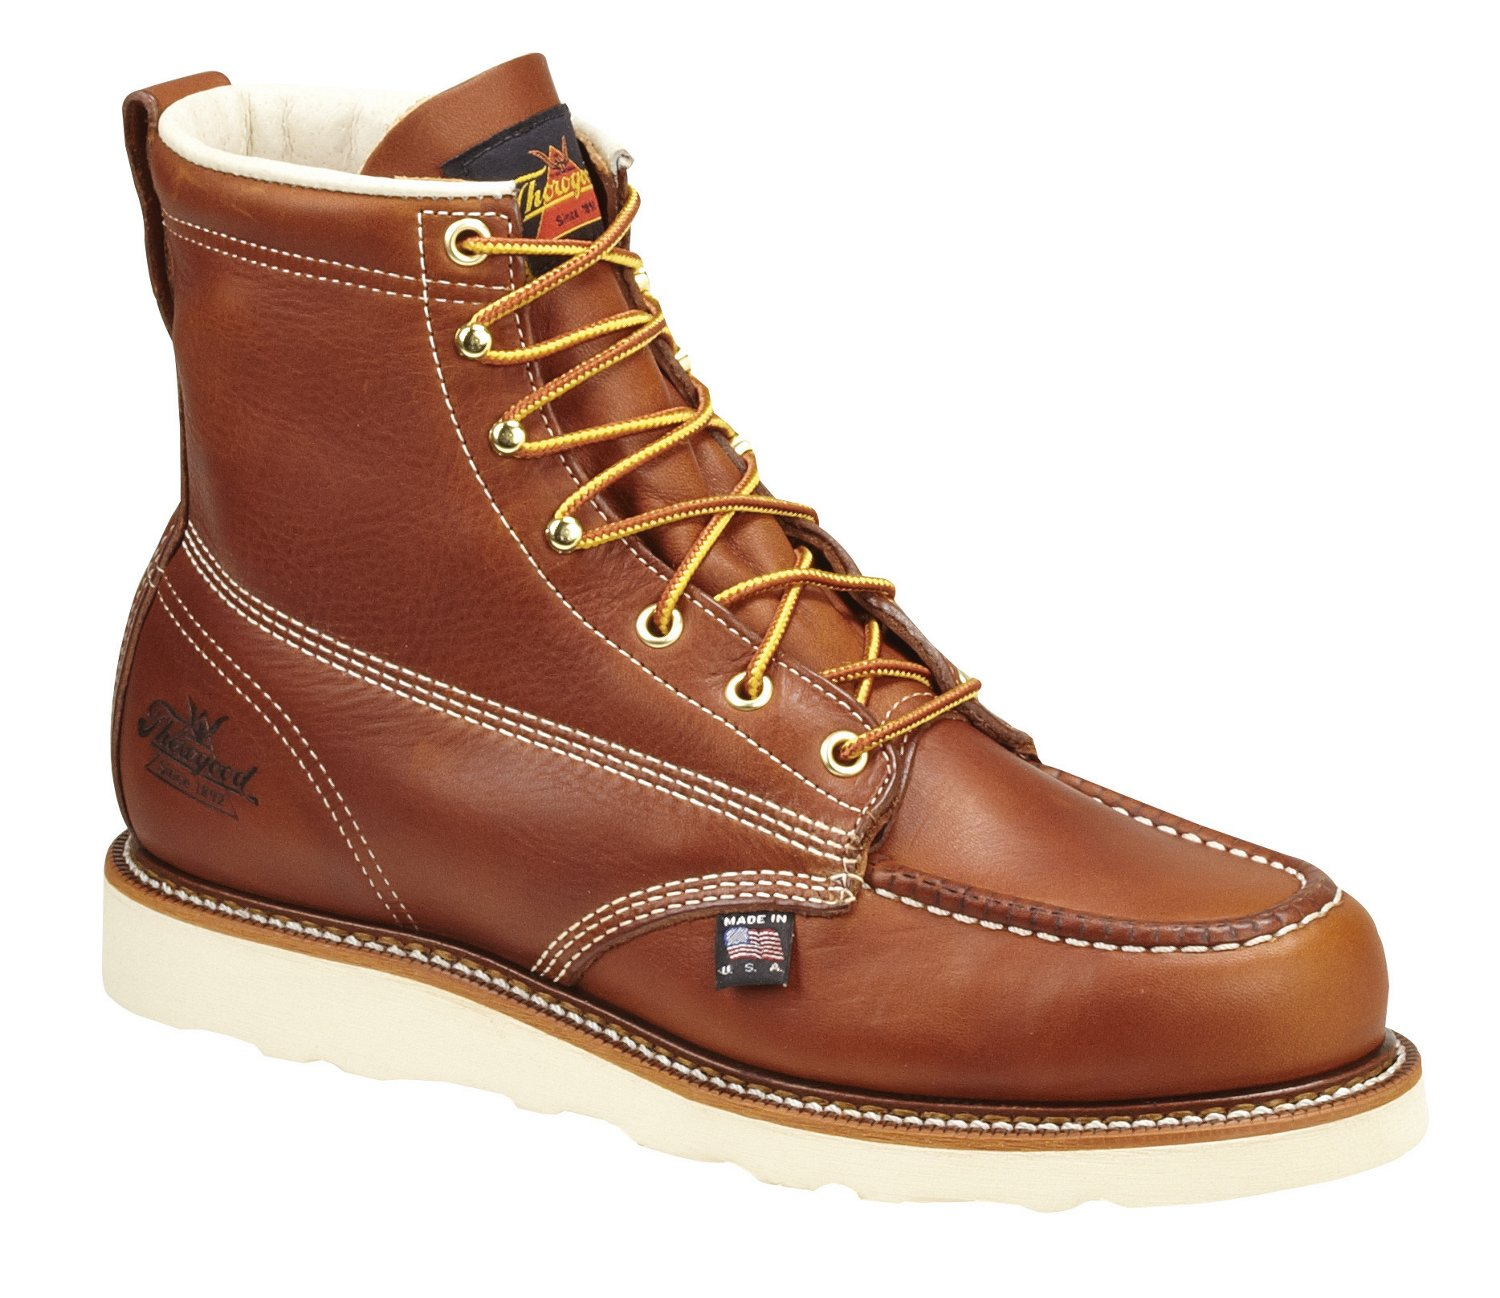 f0062dbbc06 Thorogood Shoes Men's American Heritage 6 in Moc Toe Wedge Lace Up Work  Boots